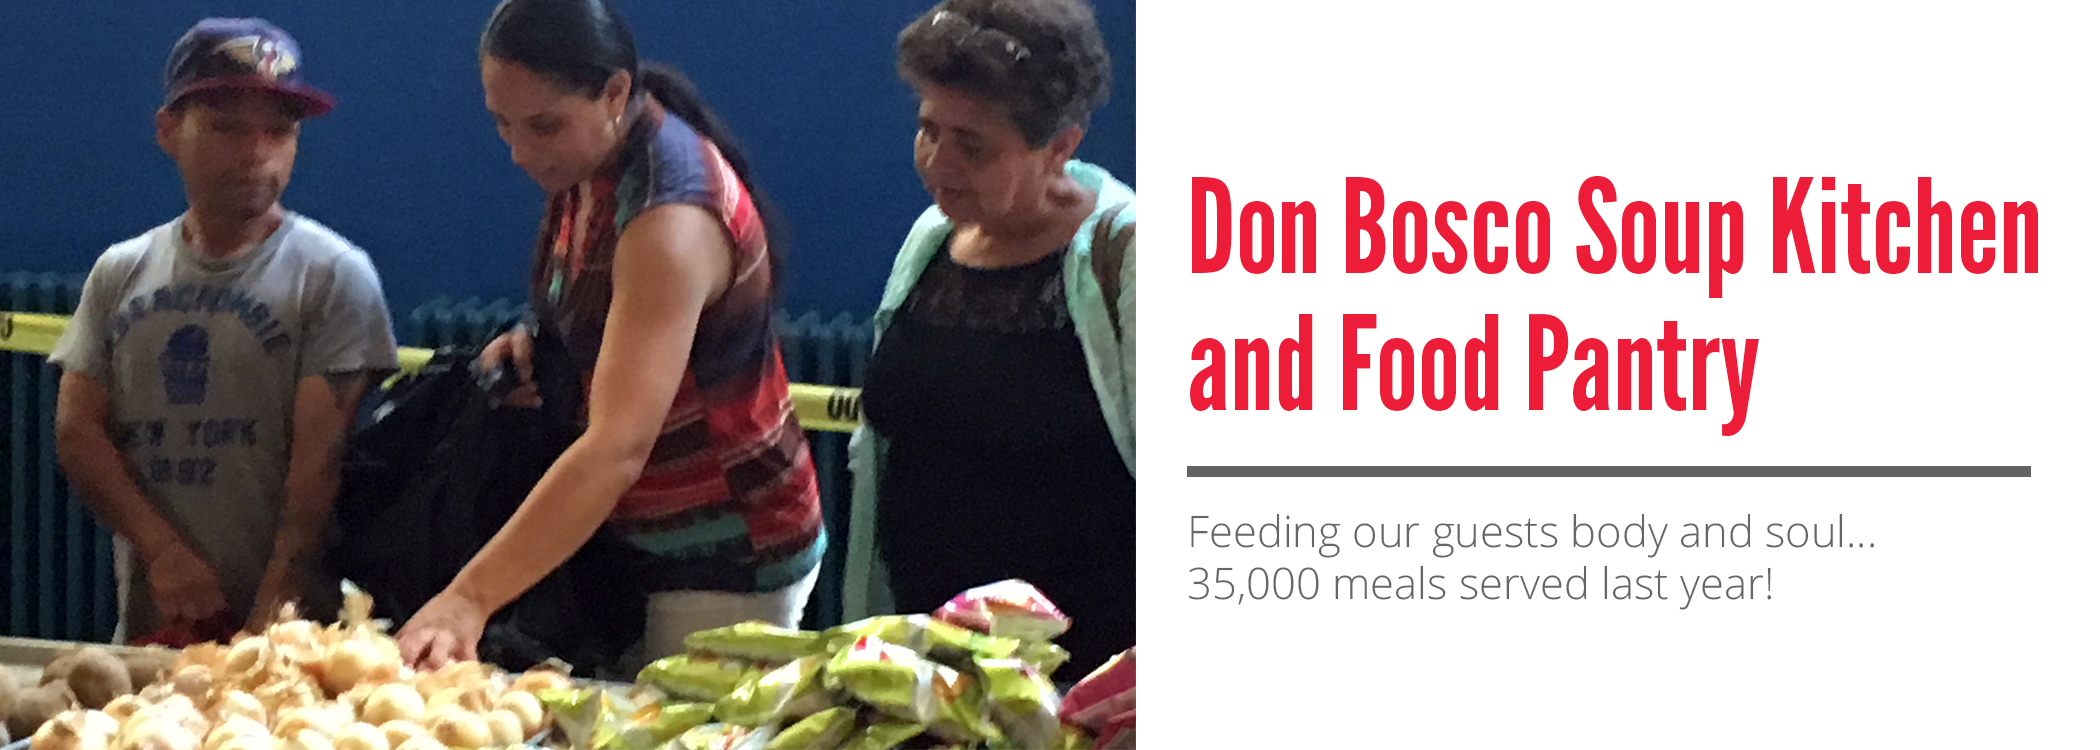 Don Bosco Soup Kitchen